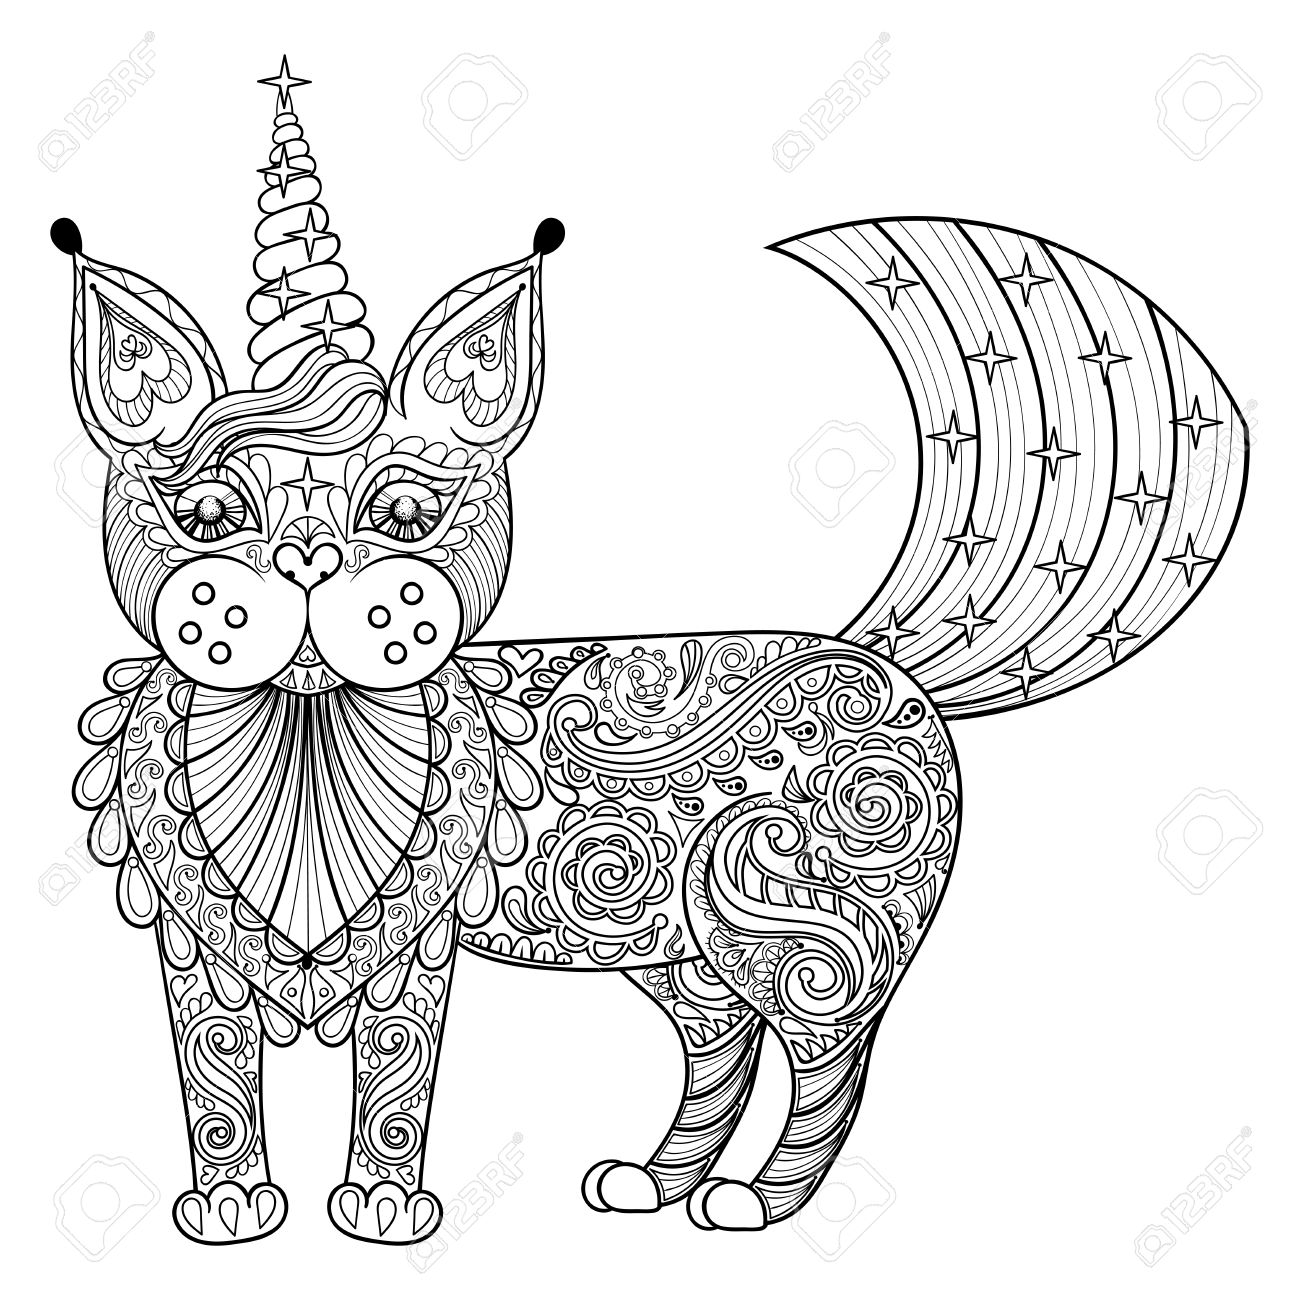 Zen cat coloring page - Vector Zentangle Magic Cat Unicorn Black Print For Adult Anti Stress Coloring Page Hand